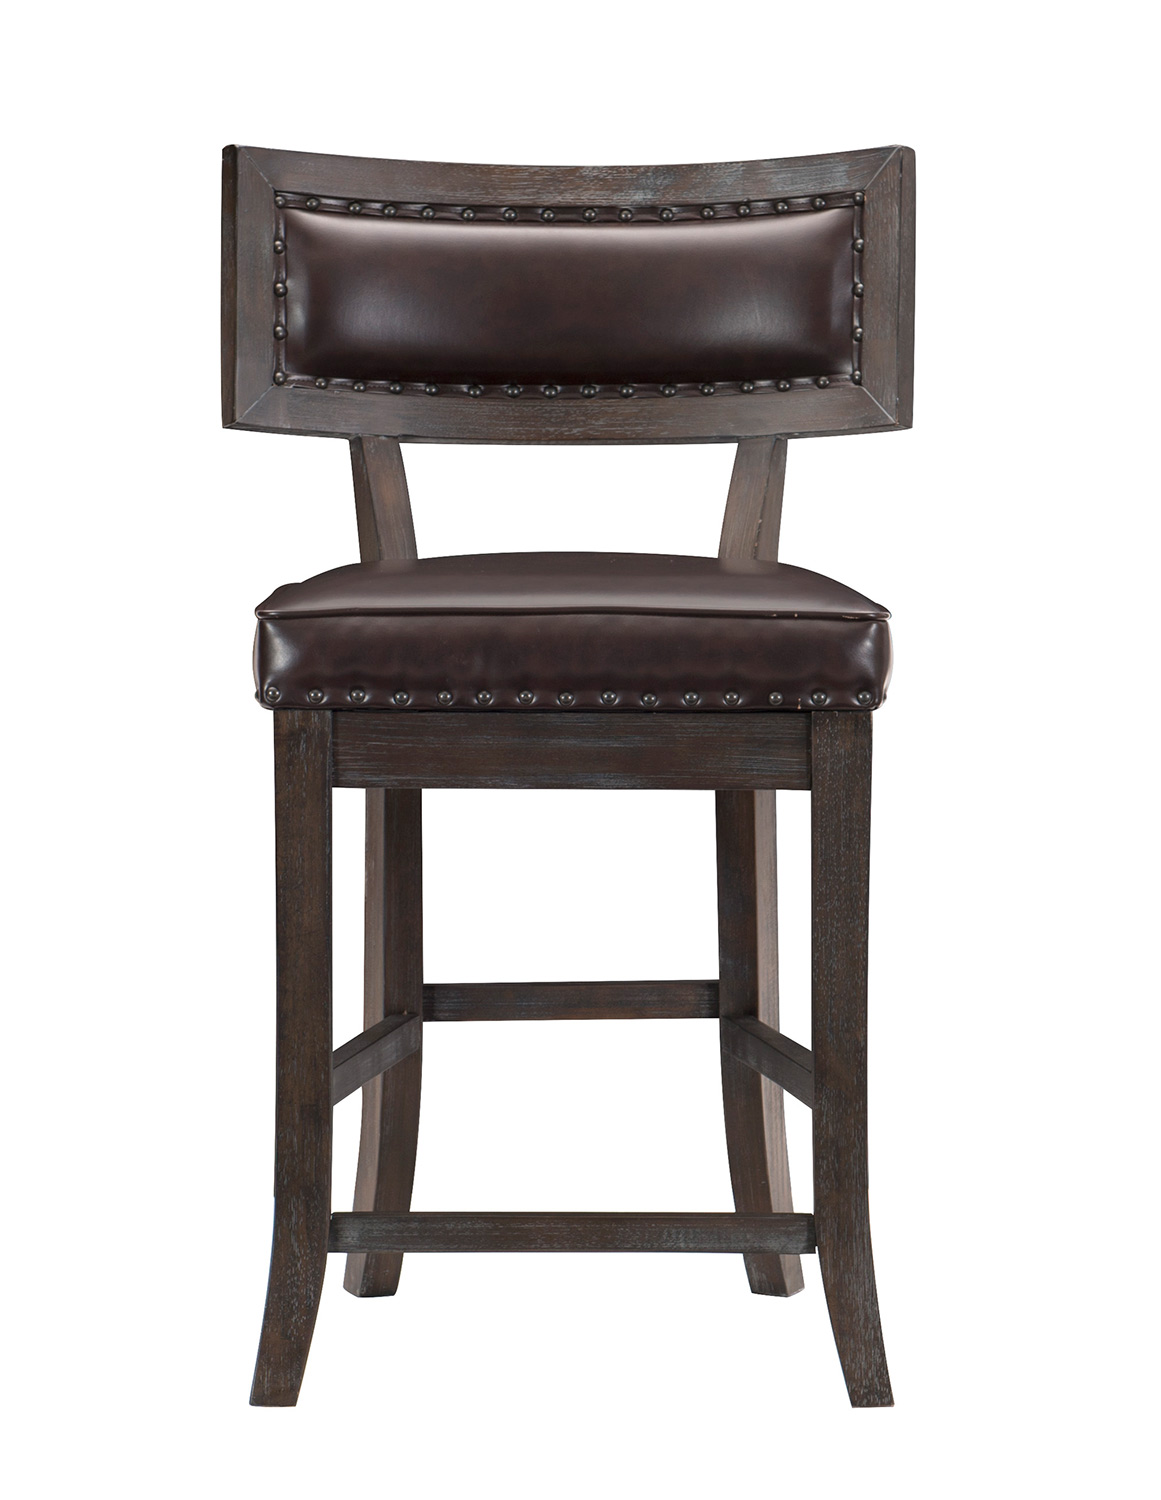 Homelegance Oxton Counter Height Chair - Rustic Brown